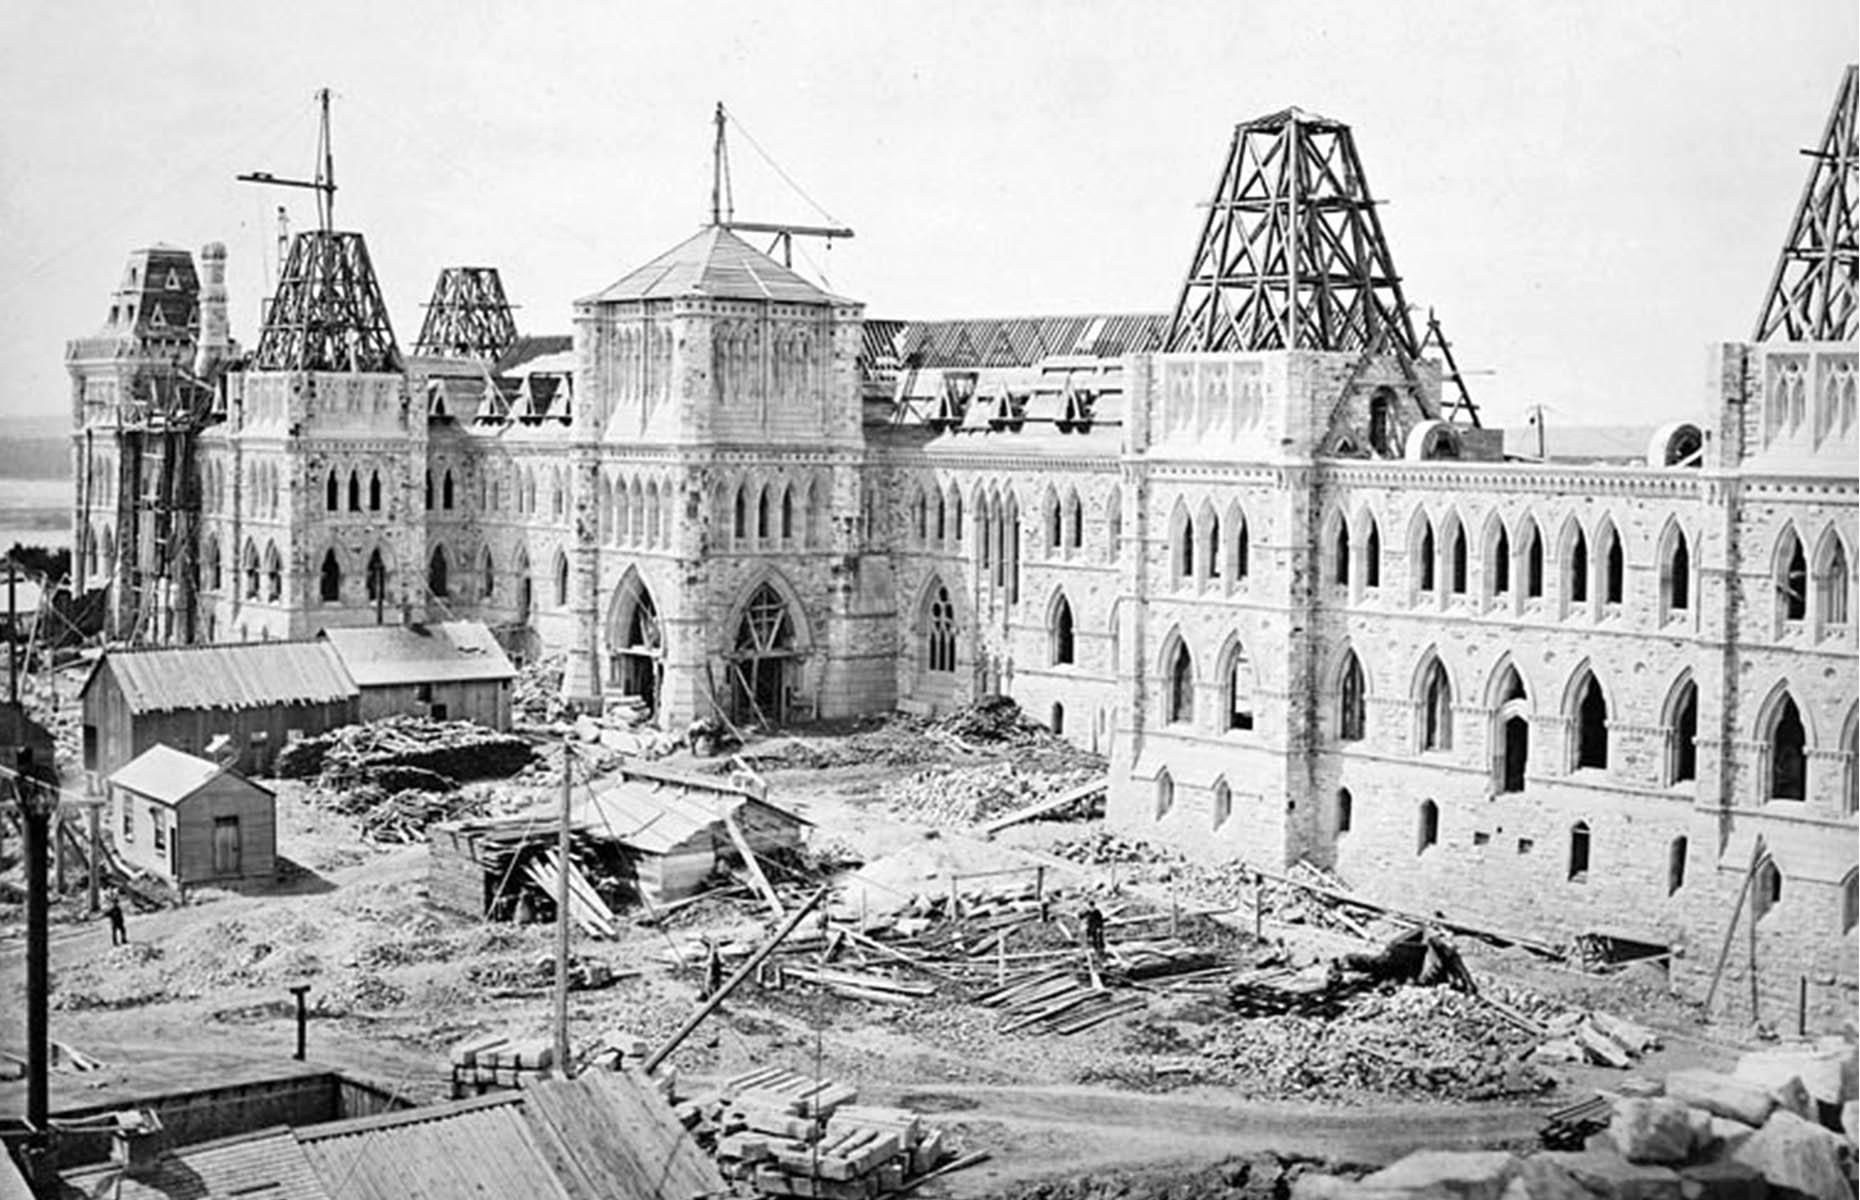 Slide 8 of 41: Canada's Parliament building has had a tumultuous history, beginning right back in the 1850s, when Ottawa was first selected as the capital. Work on the Gothic Revival-style buildings on Parliament Hill began in 1859 and was eventually completed in 1866. The sprawling Centre Block is pictured here under construction in 1863.